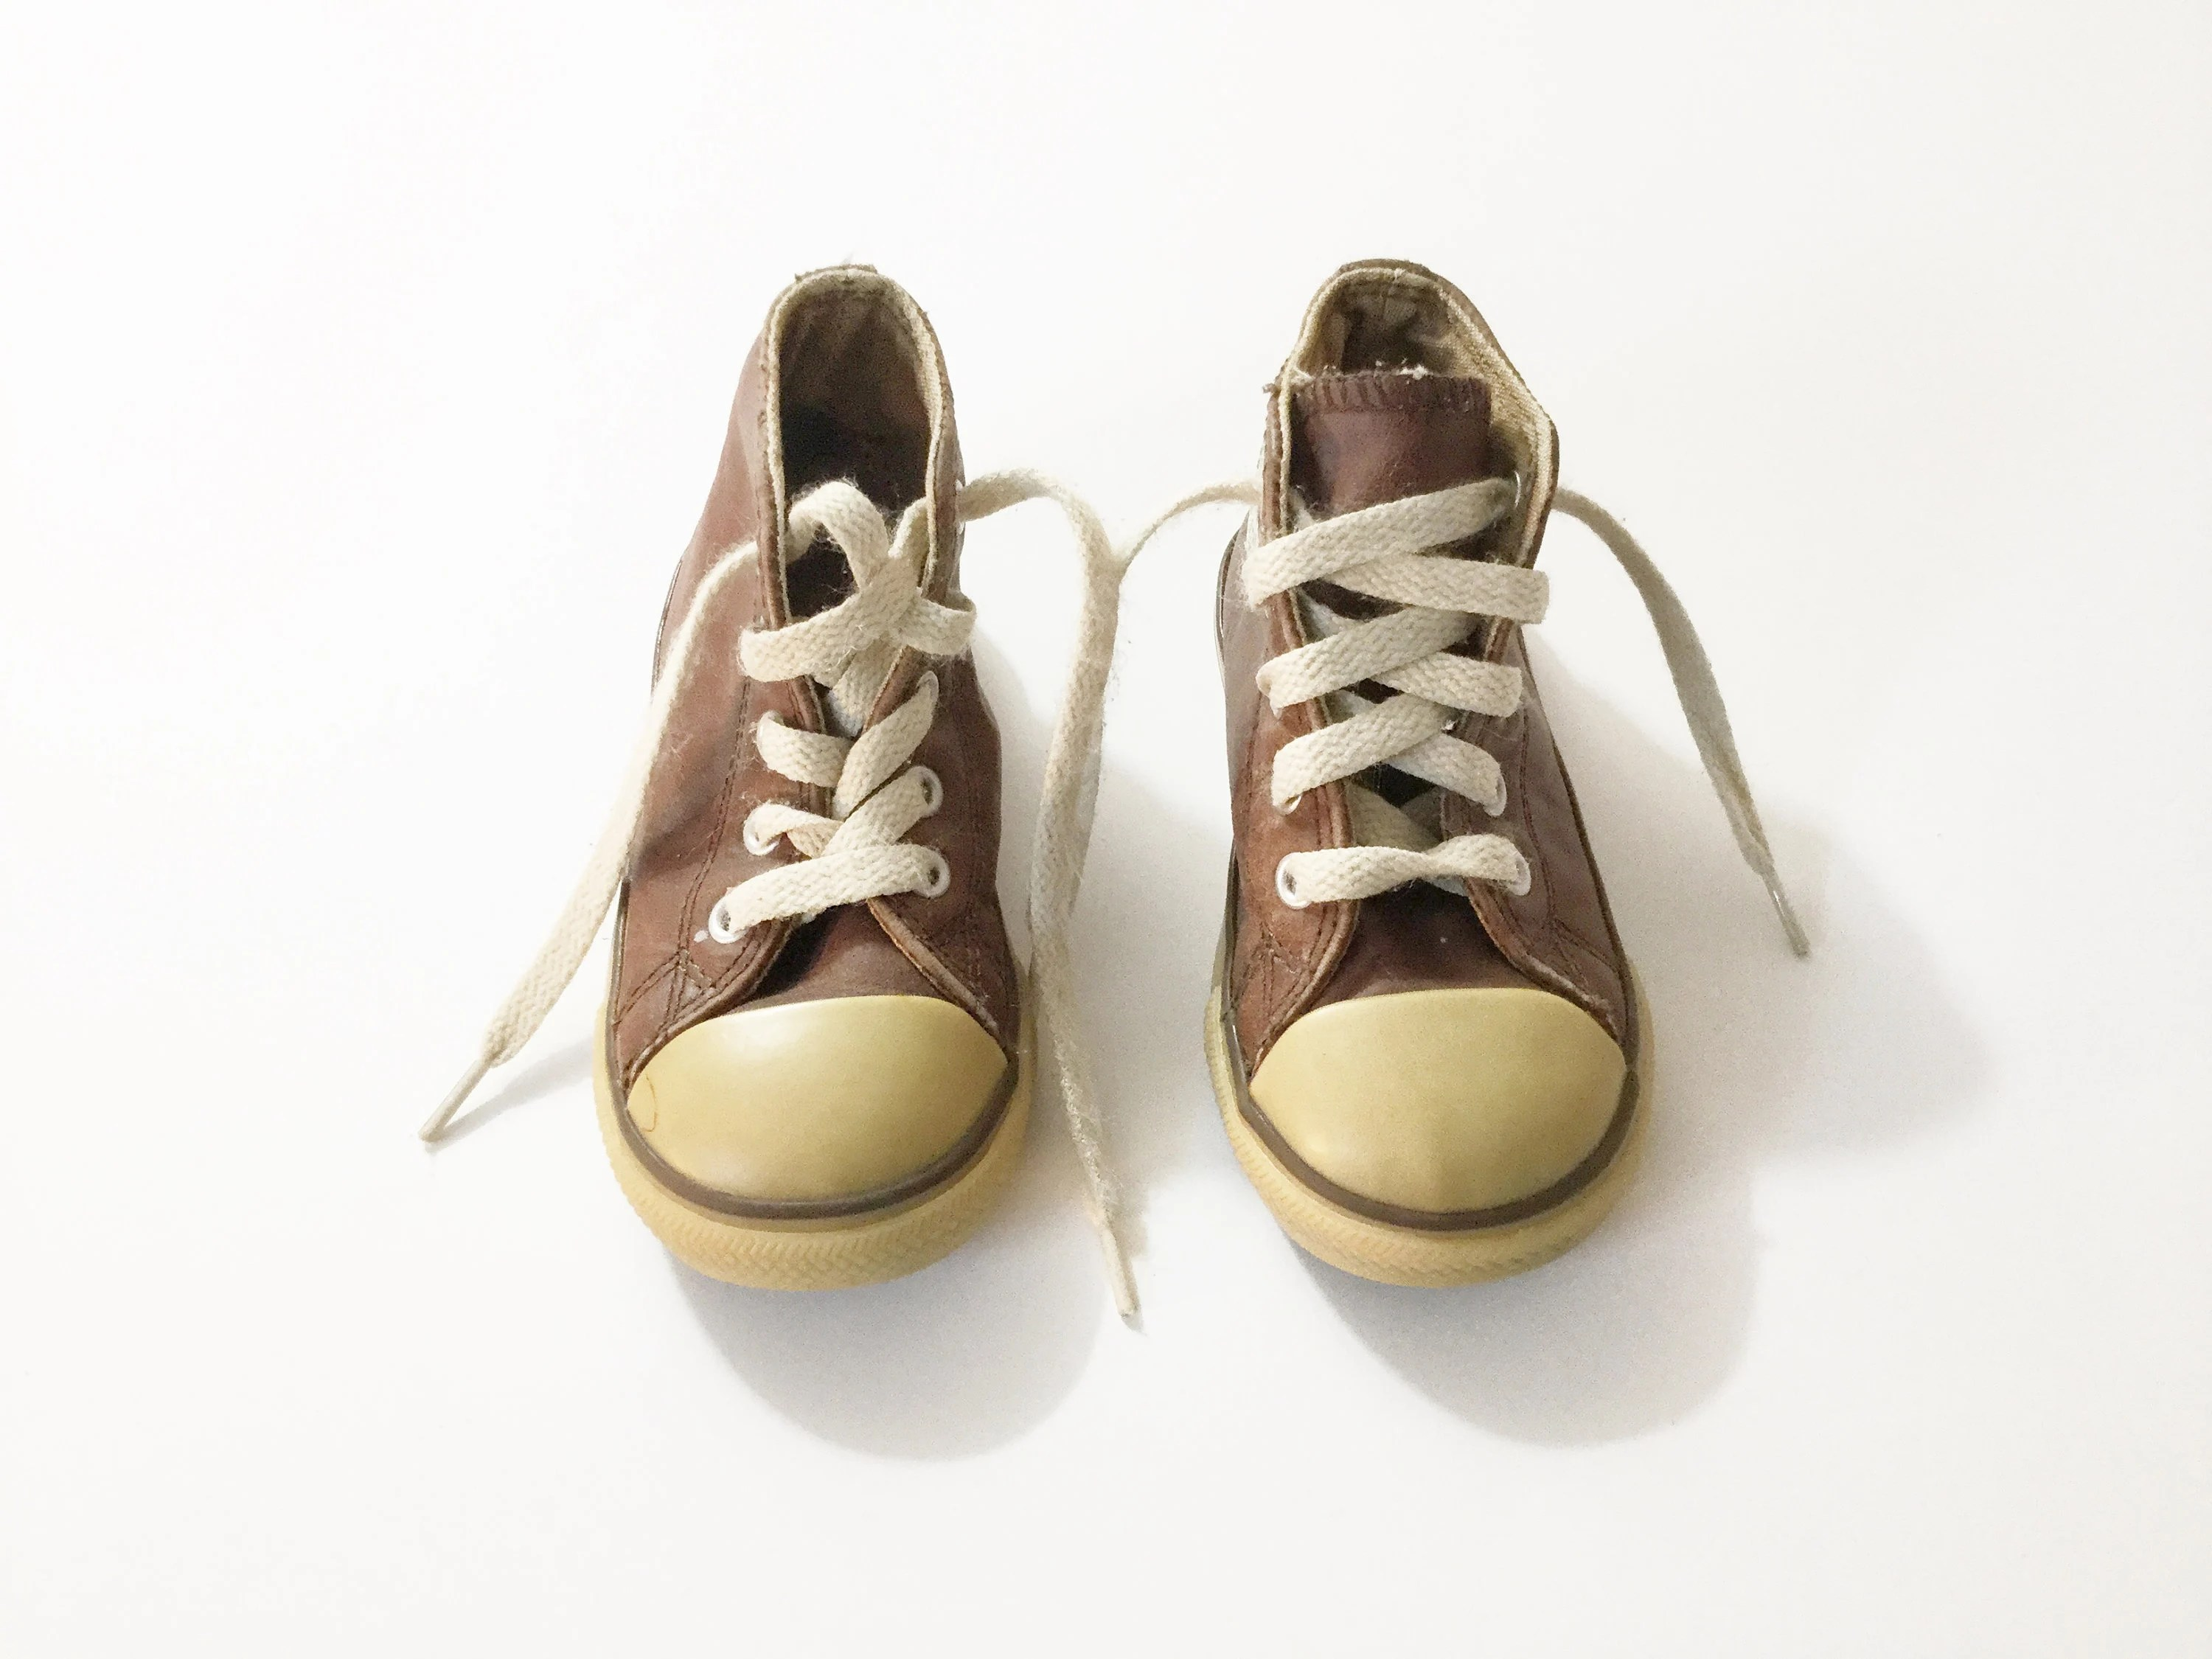 Infant Sneakers Vtg Chuck Taylor Infant Sneakers Infant Converse All Star Leather Converse Sneakers Converse All Stars Childs Converse